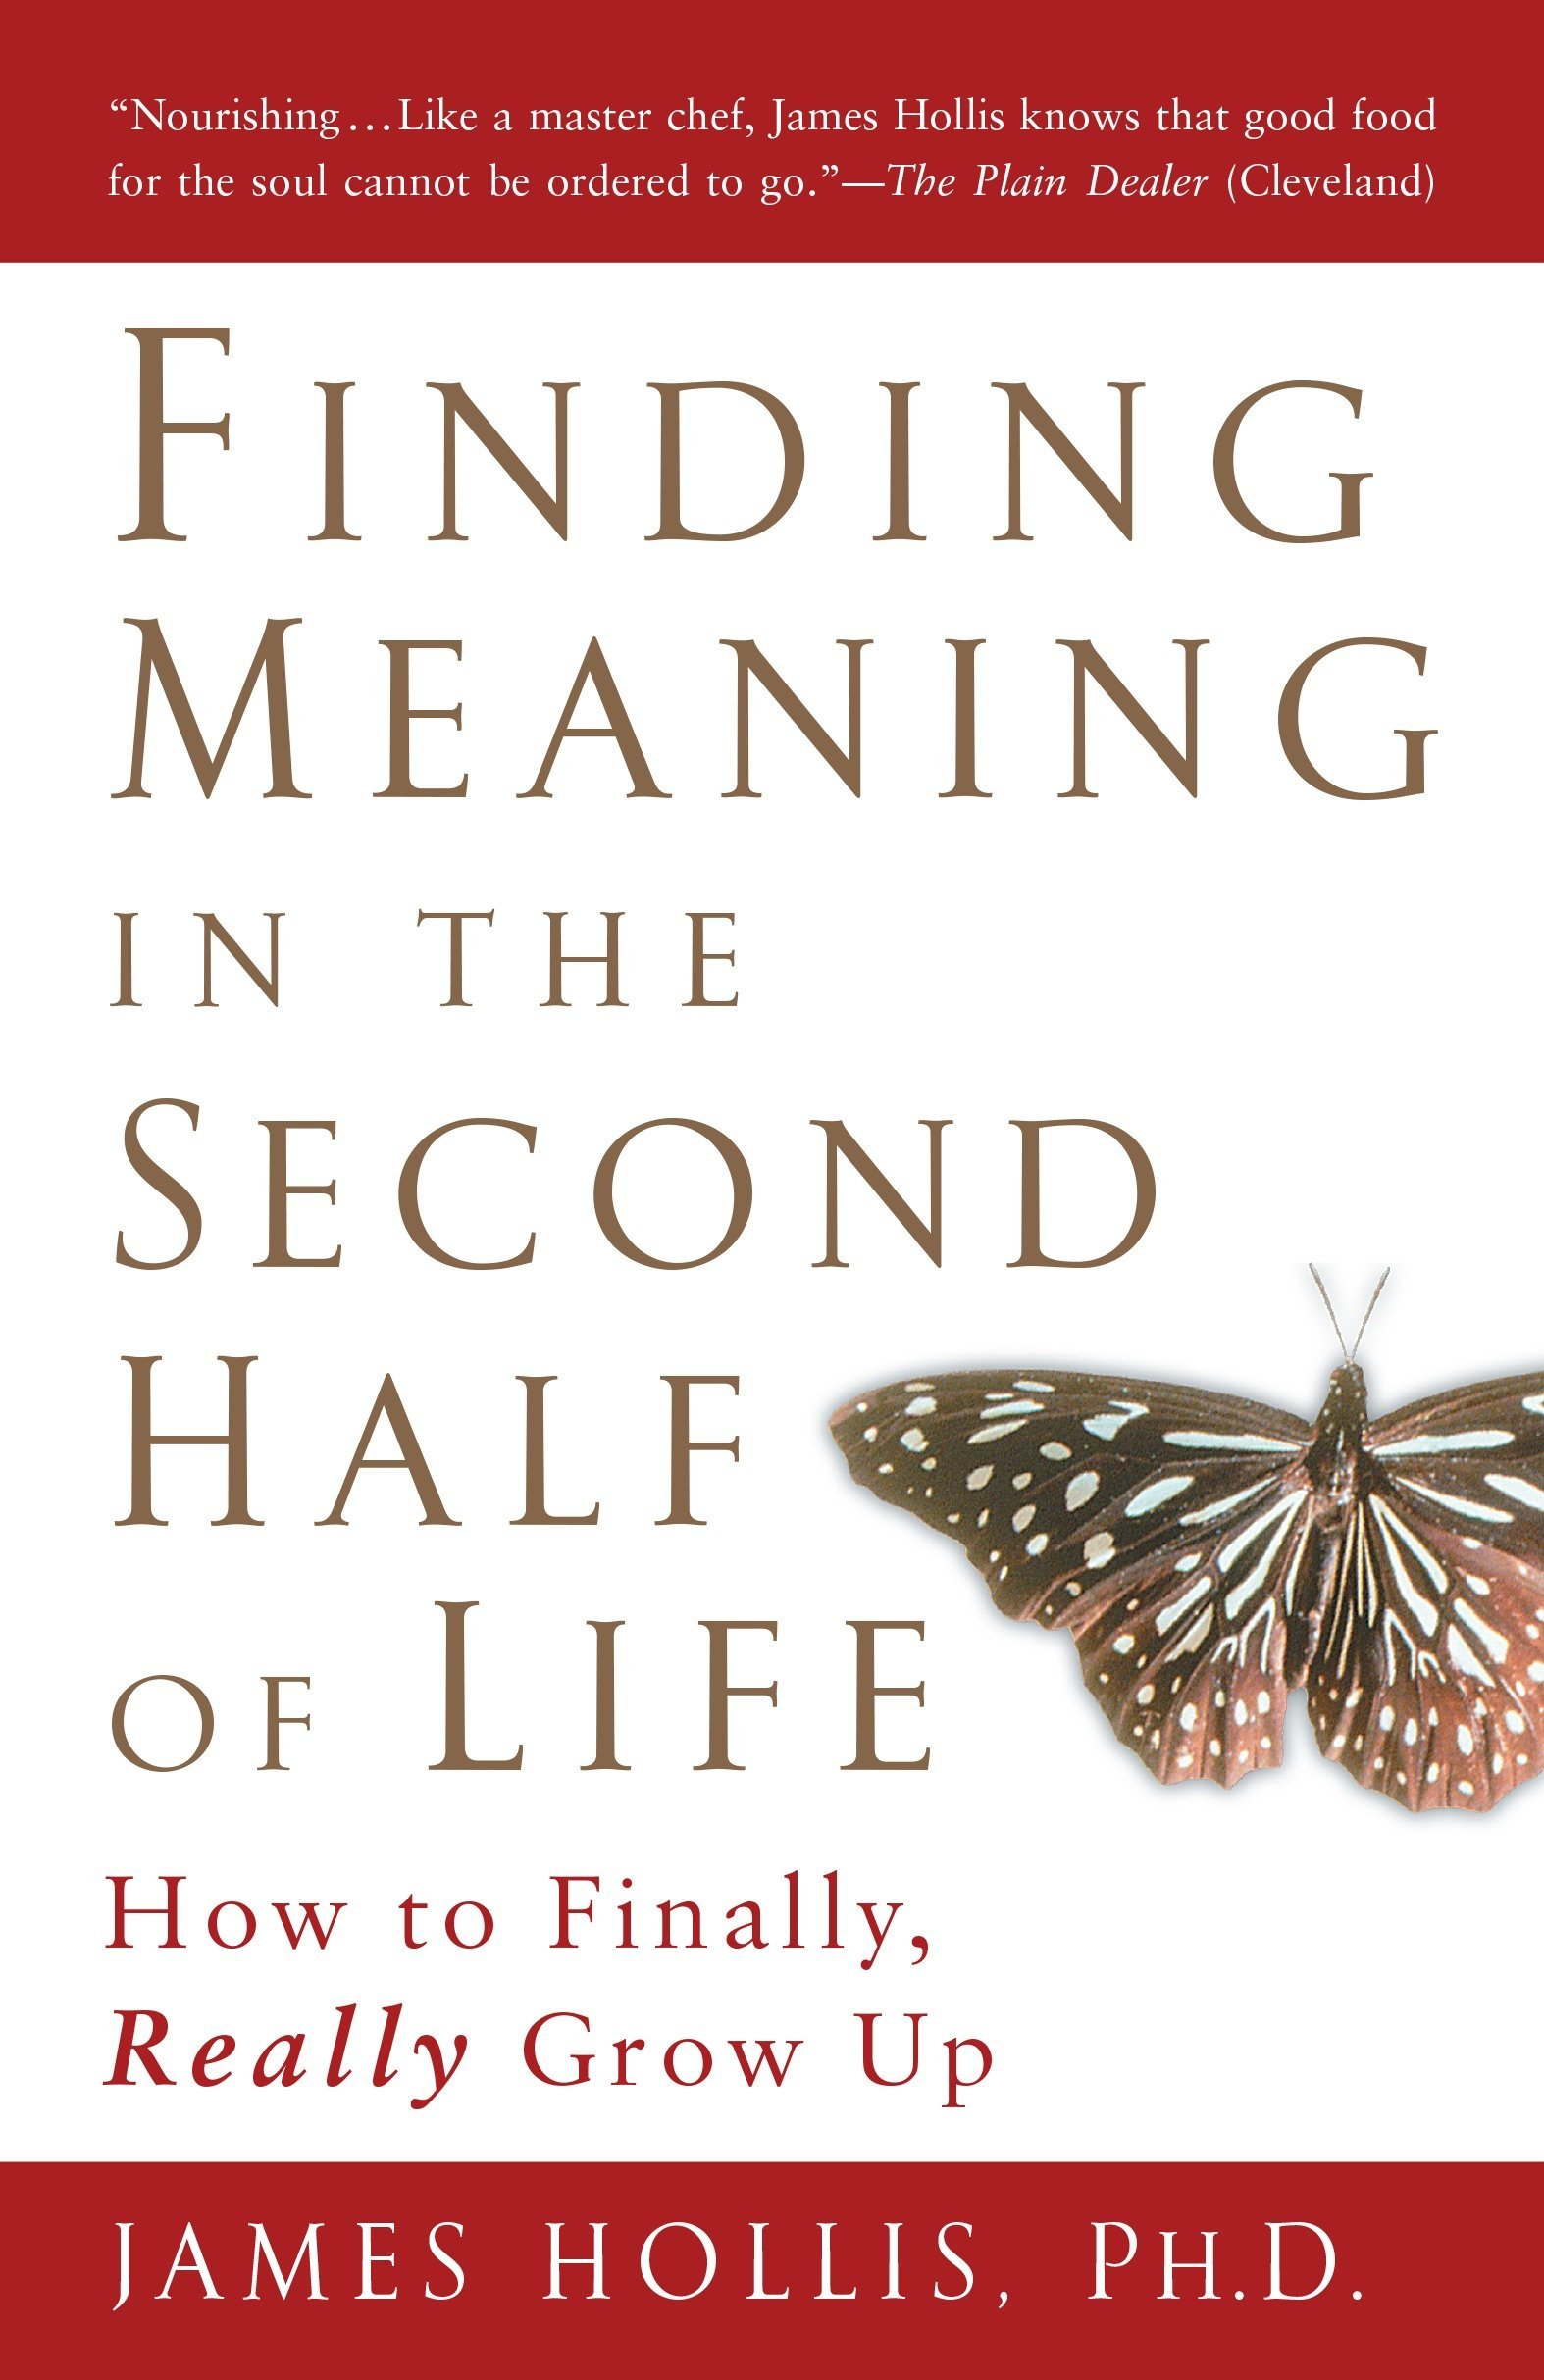 Finding Meaning in the Second Half of Life: How to Finally, Really Grow Up:  James Hollis: 9781592402076: Amazon.com: Books